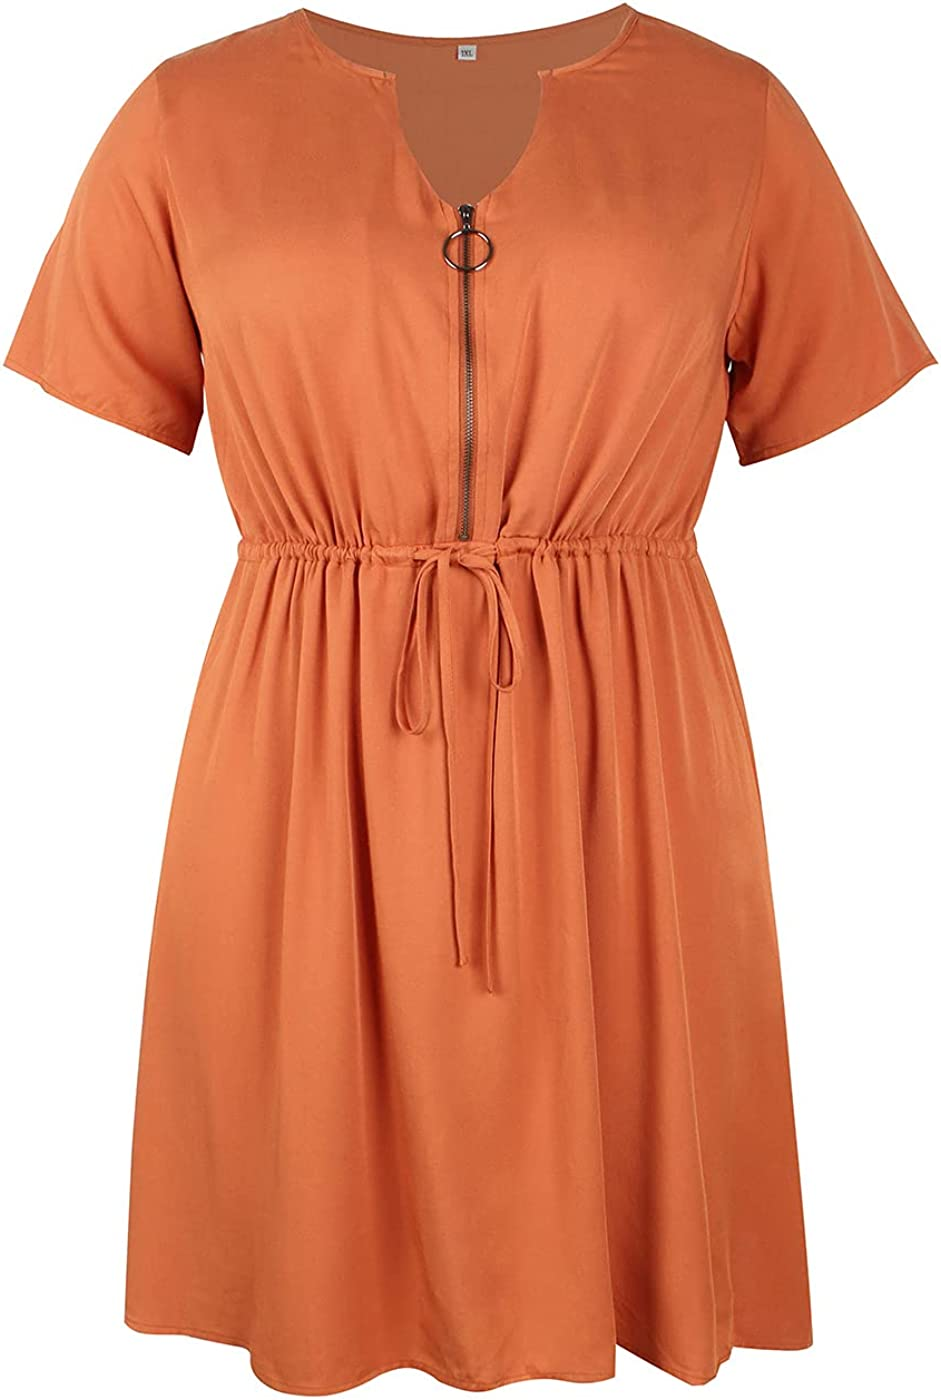 SKISS Women's Plus Size Short Sleeve V Neck Casual Dress with tie Belt